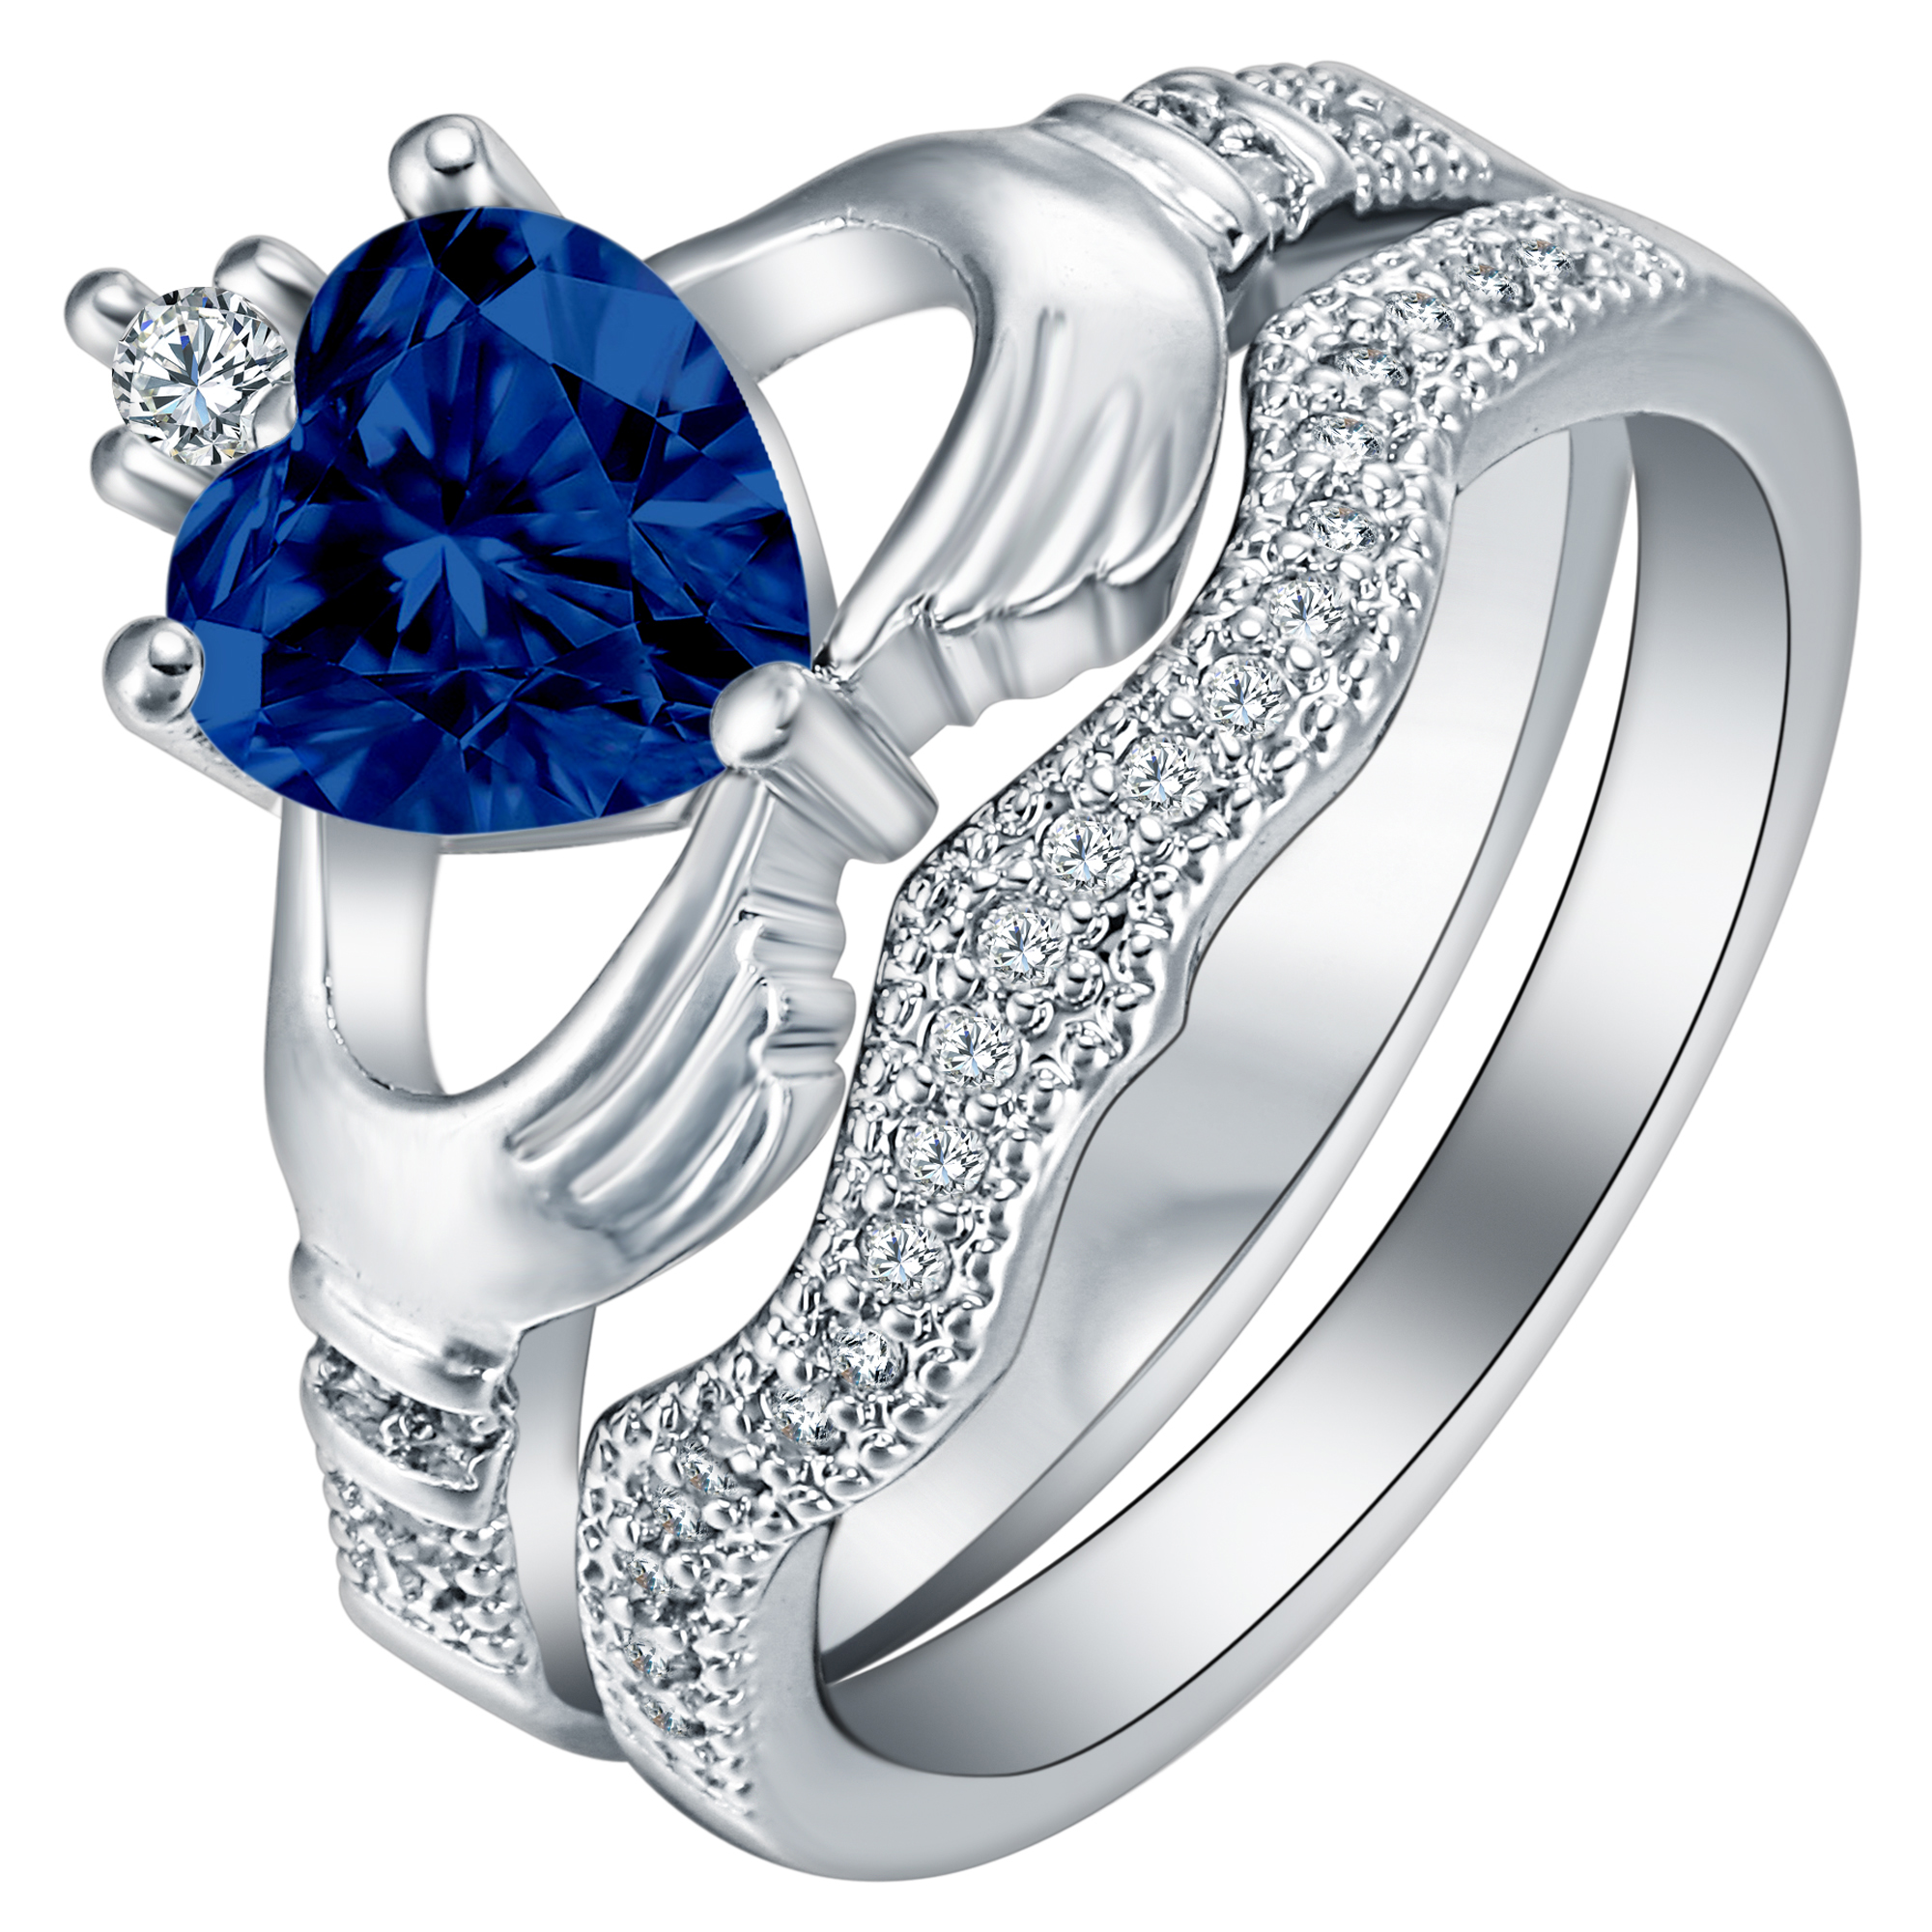 diamond platinum cushion sapphire setting saphire cut gia ring appraisal rings royal natural blue g certified tcw